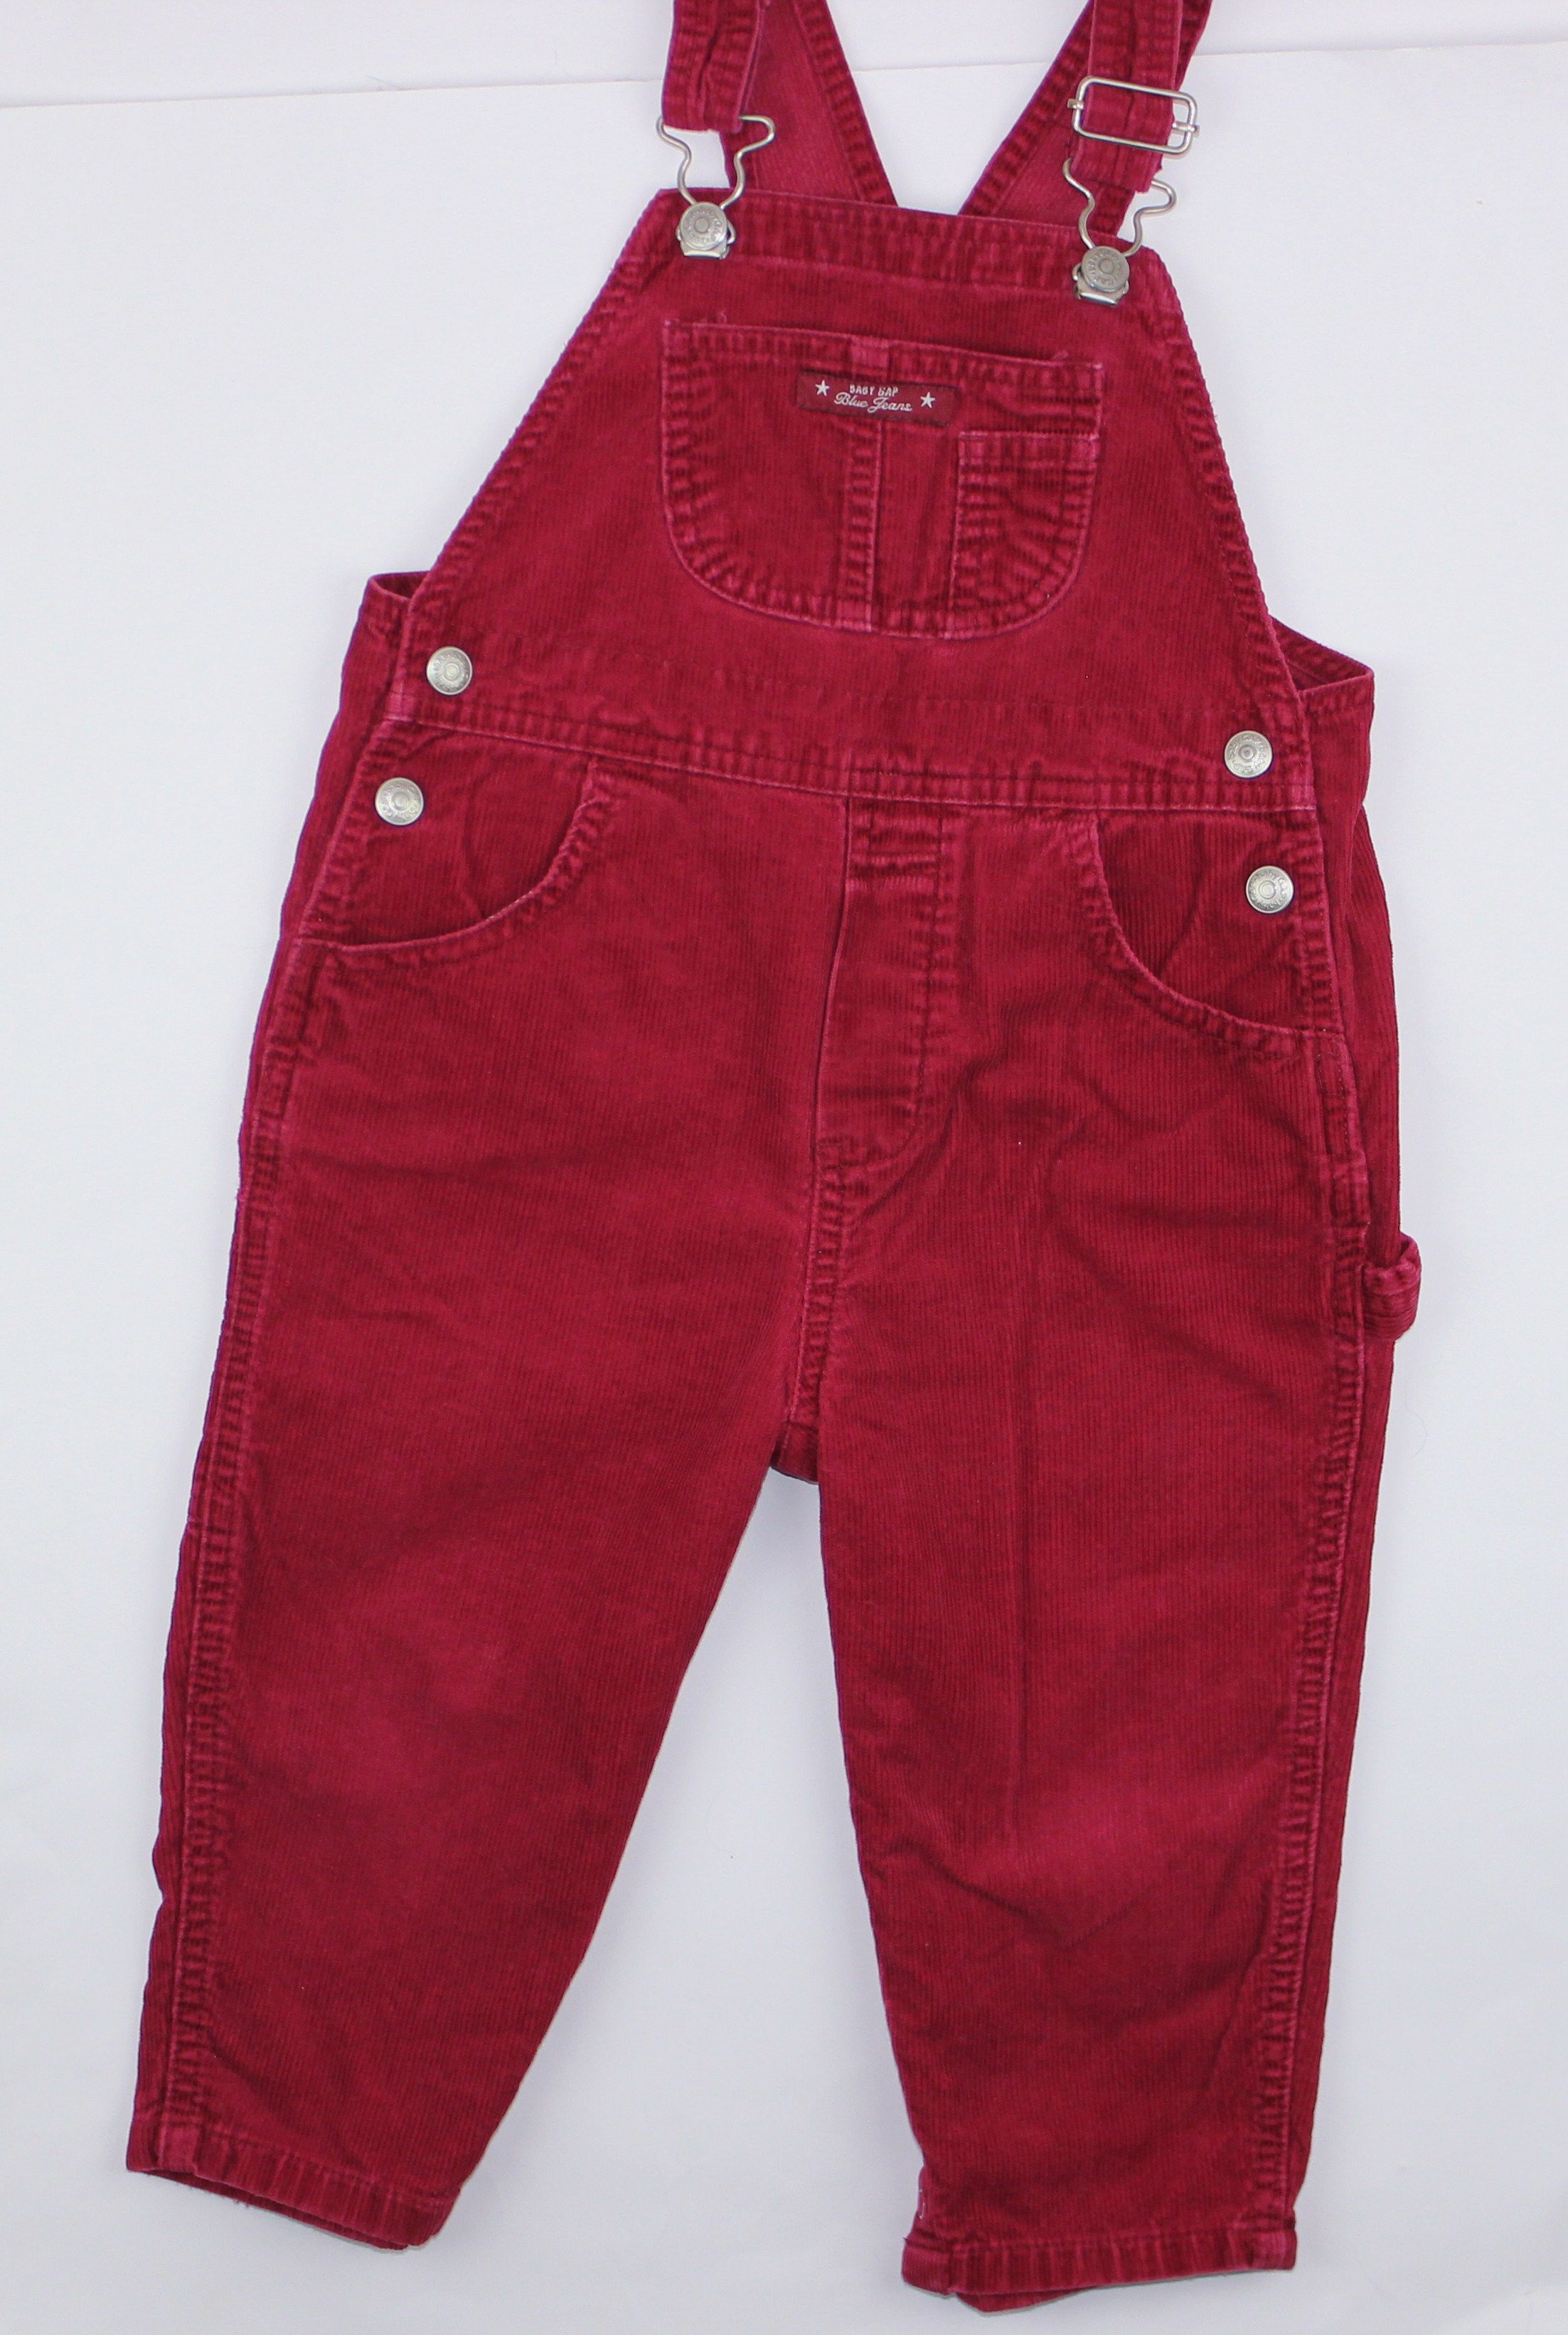 Baby Gap Red Corduroy Overalls Sizes 3 Xl 30 36 Months Only 6 Online Resale At May Bug Treasures Boys New Fashion Resale Clothing Kids Outfits